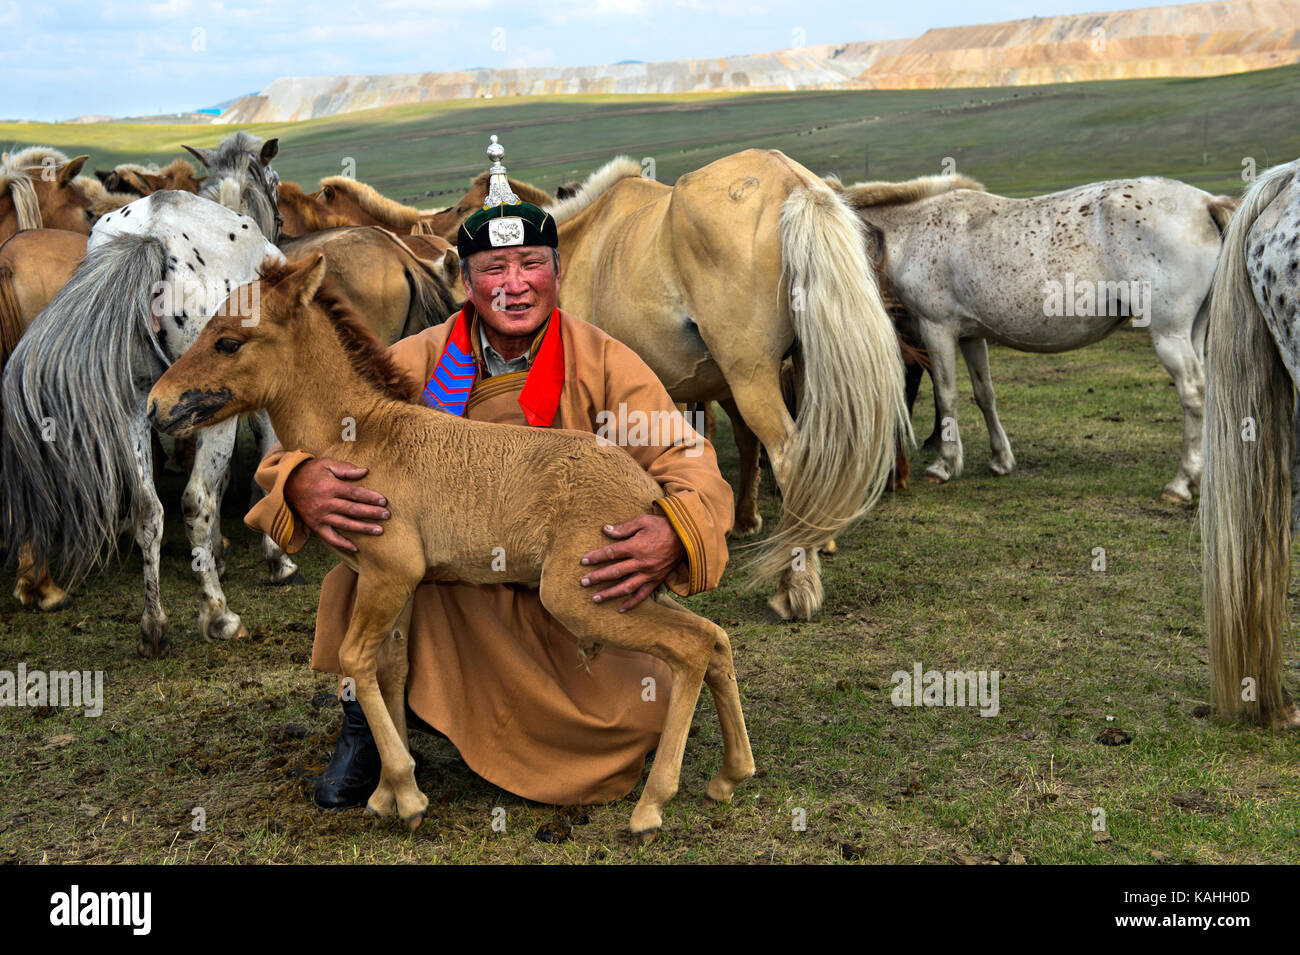 Mongolian man, horse shepherd, in traditional dress with foal and herd of horses, Mongolia - Stock Image